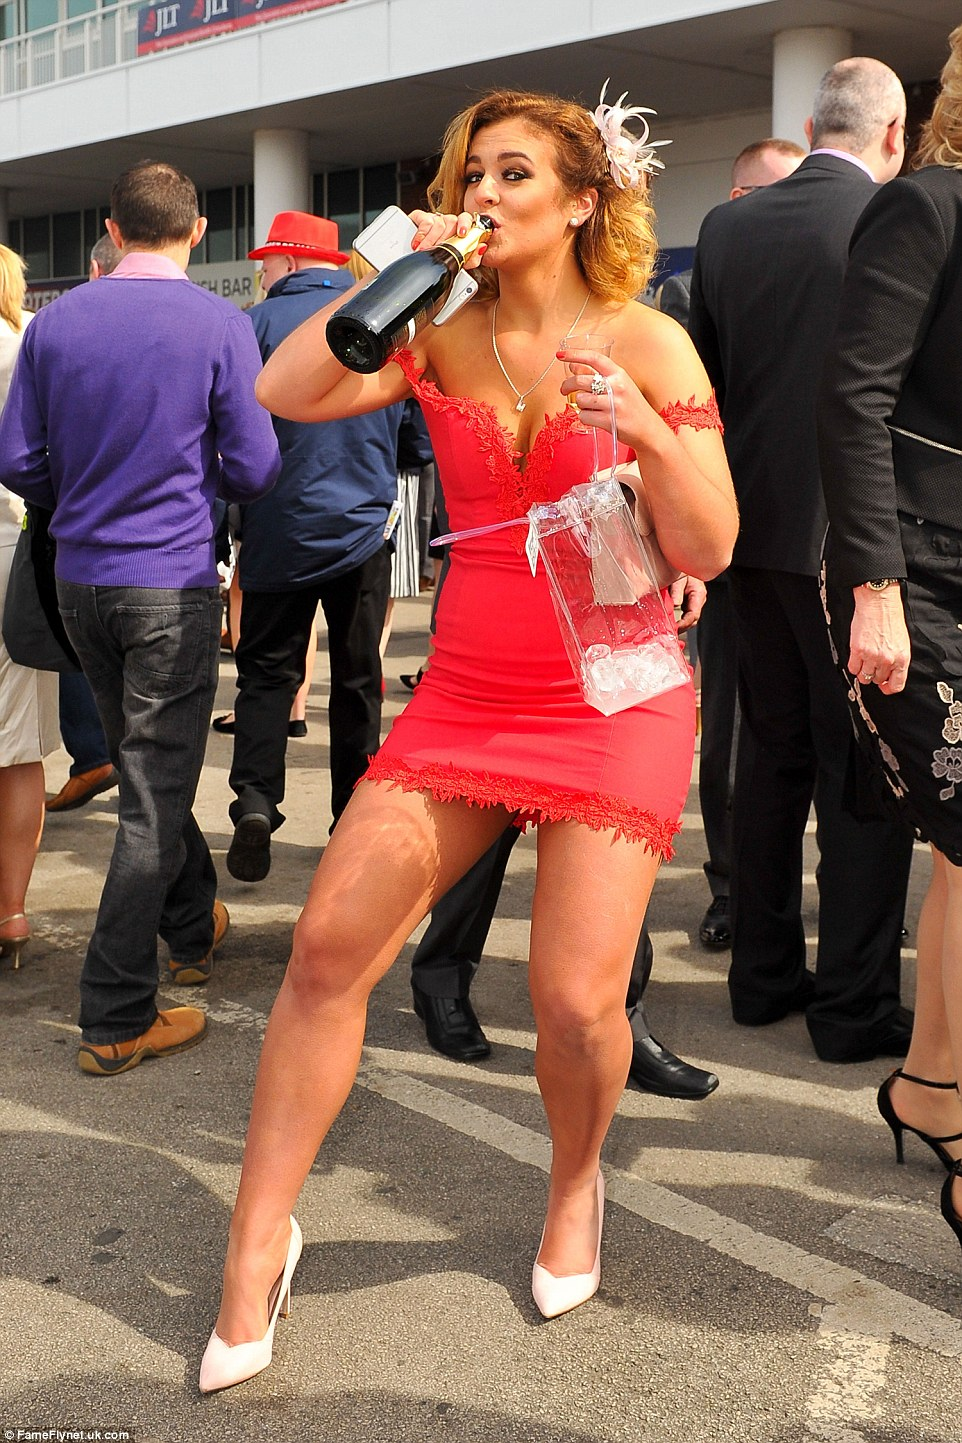 A partygoer necked champagne straight from the bottle as she soaked up the atmosphere at Ladies Day